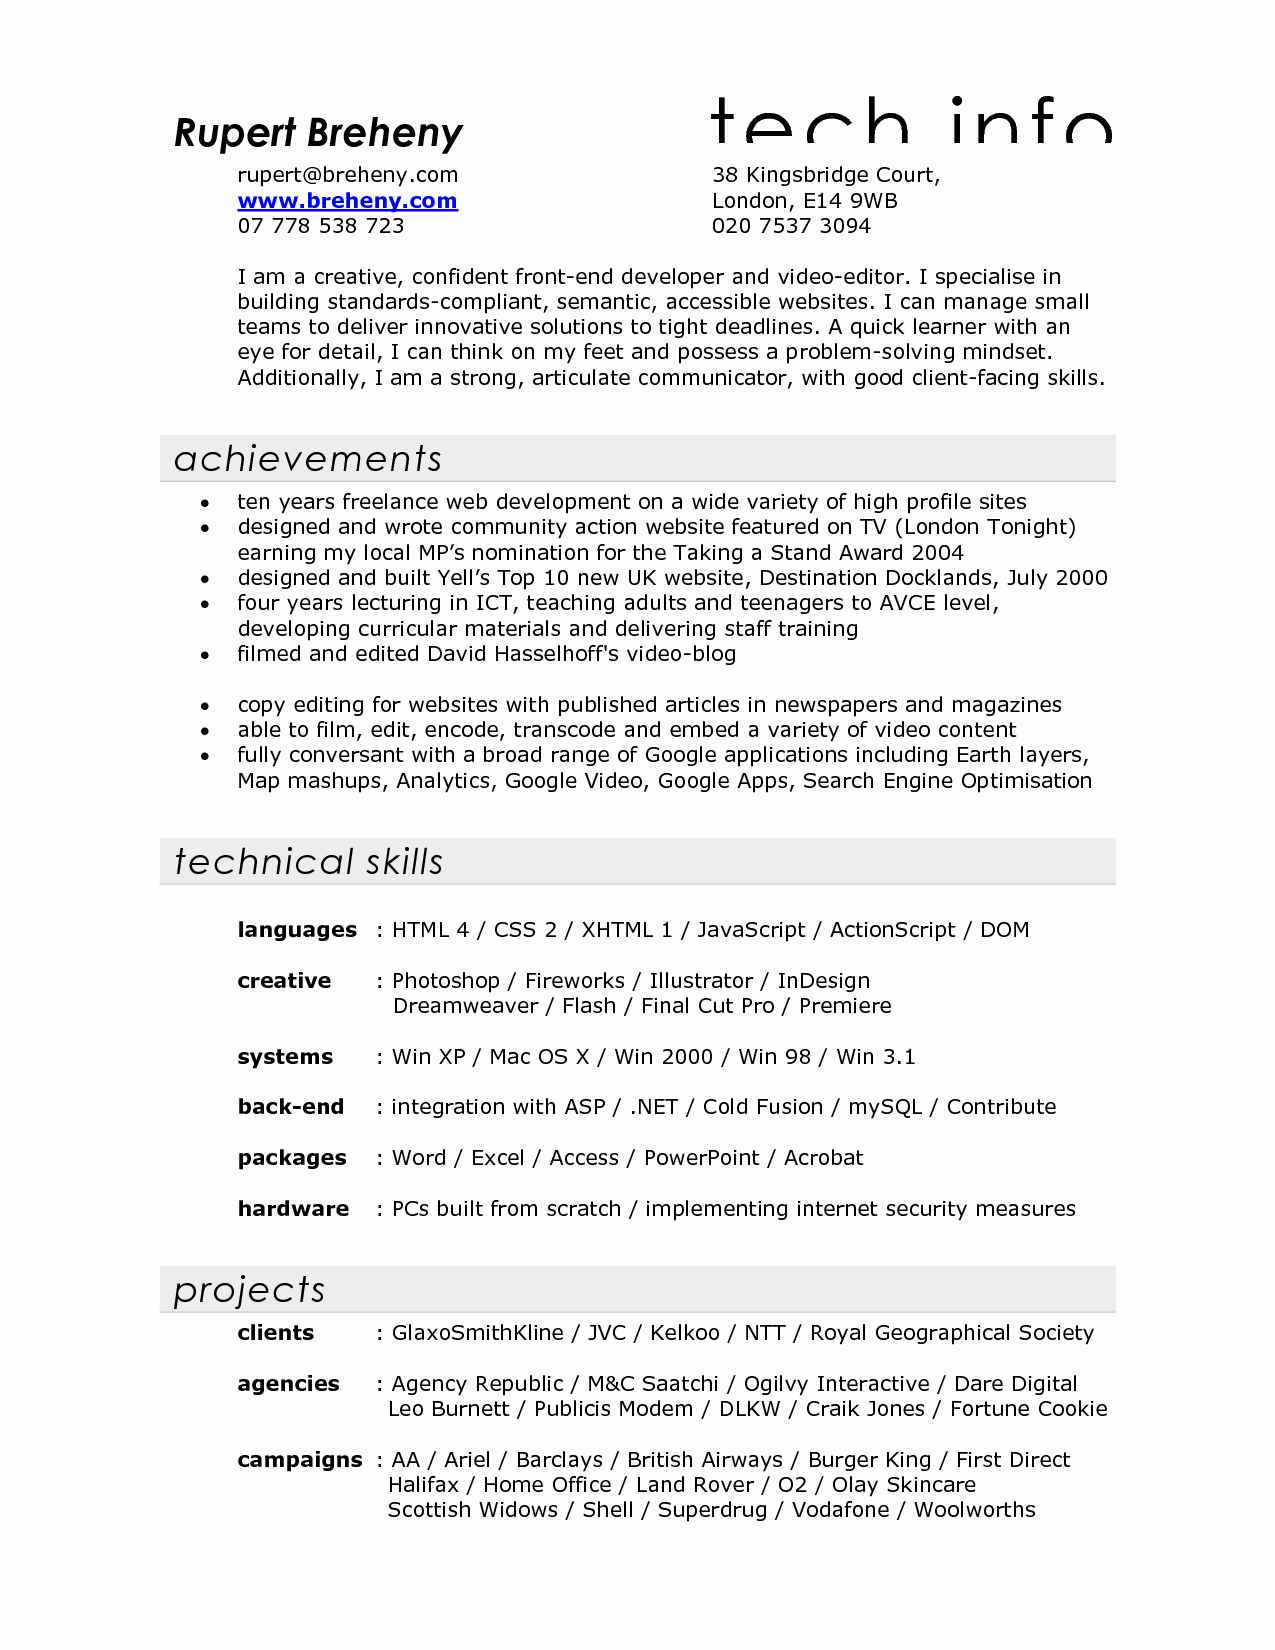 011 Film Director Resume Template Inspirational Gre Awa Analytical Essays For Writing Issue Essay Sample S Breathtaking In Hindi About Life And Struggles Fathers Full